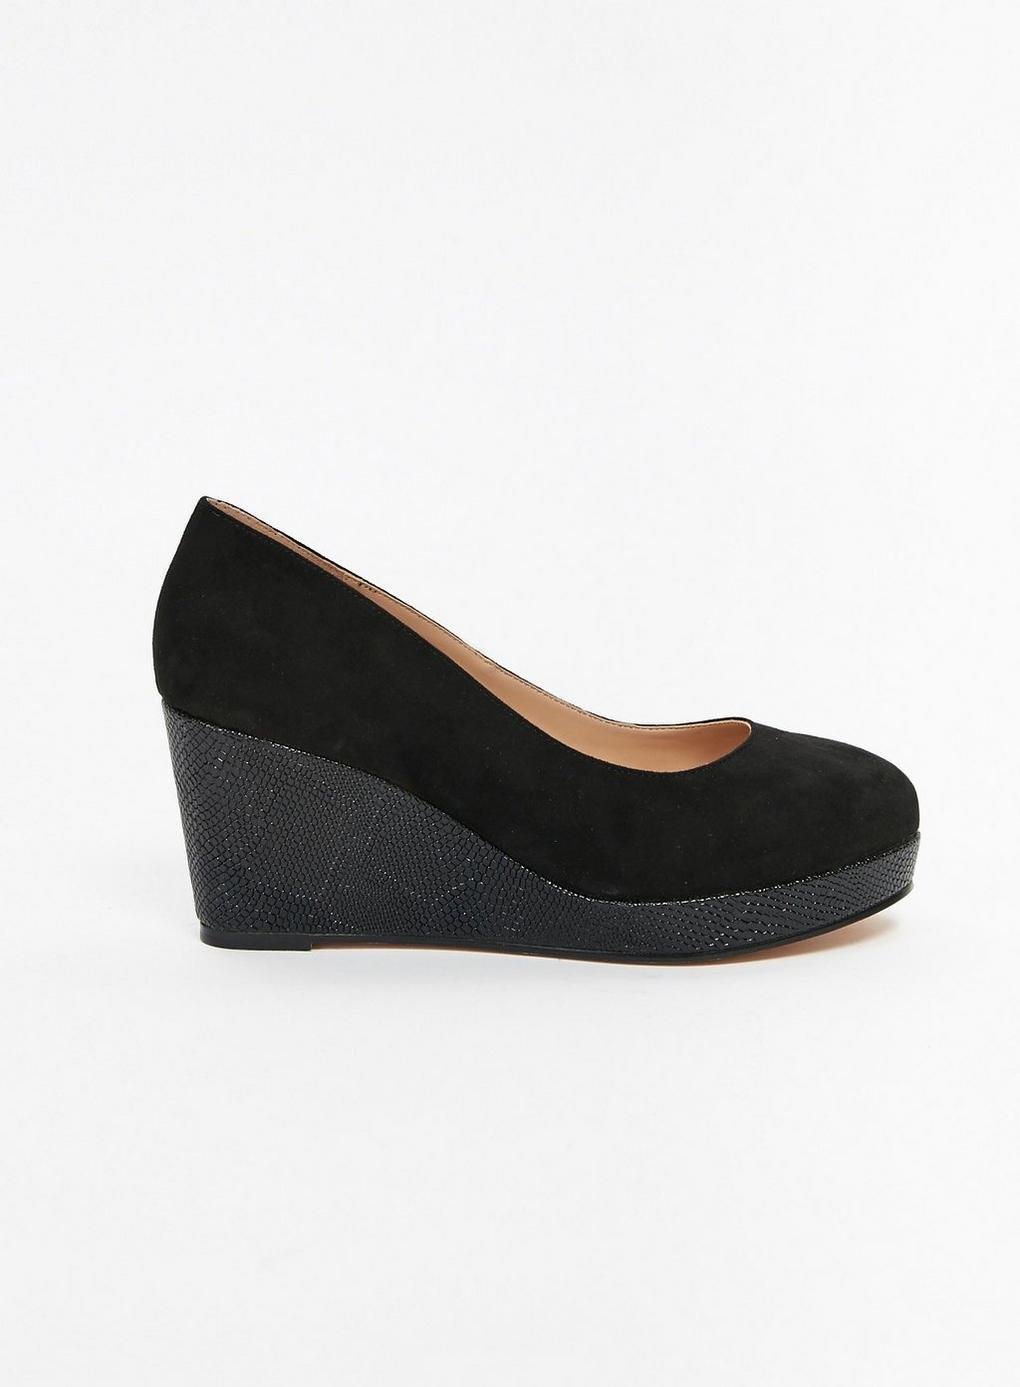 a71db6377881 Evans Extra Wide Fit Black Snake Effect Wedge Heel Shoes in Black - Lyst